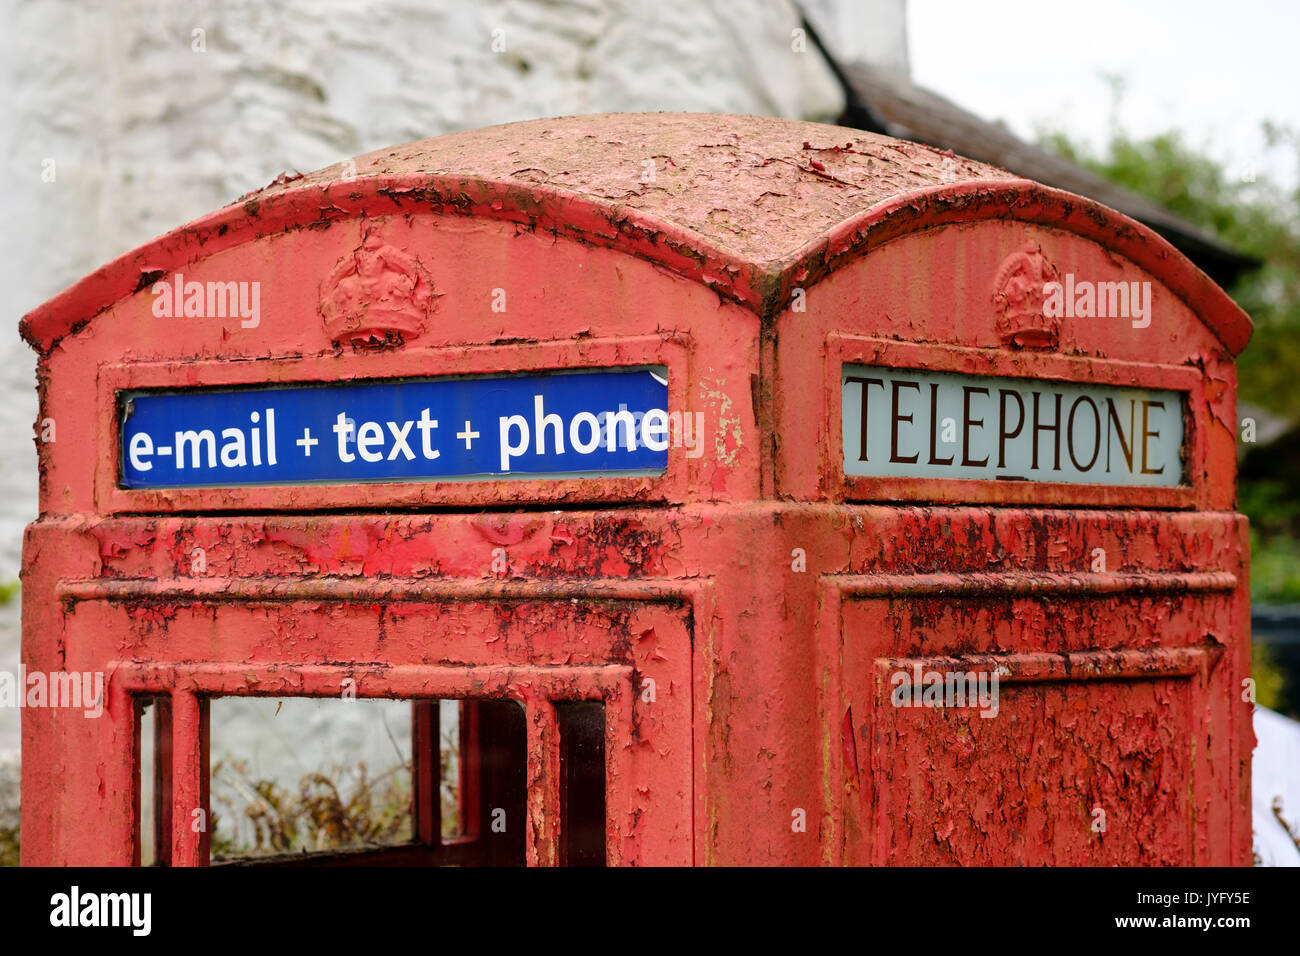 Old red telephone cell with writing e-mail + text + phone, St Neot, Bodmin Moor, Cornwall, England, United Kingdom - Stock Image